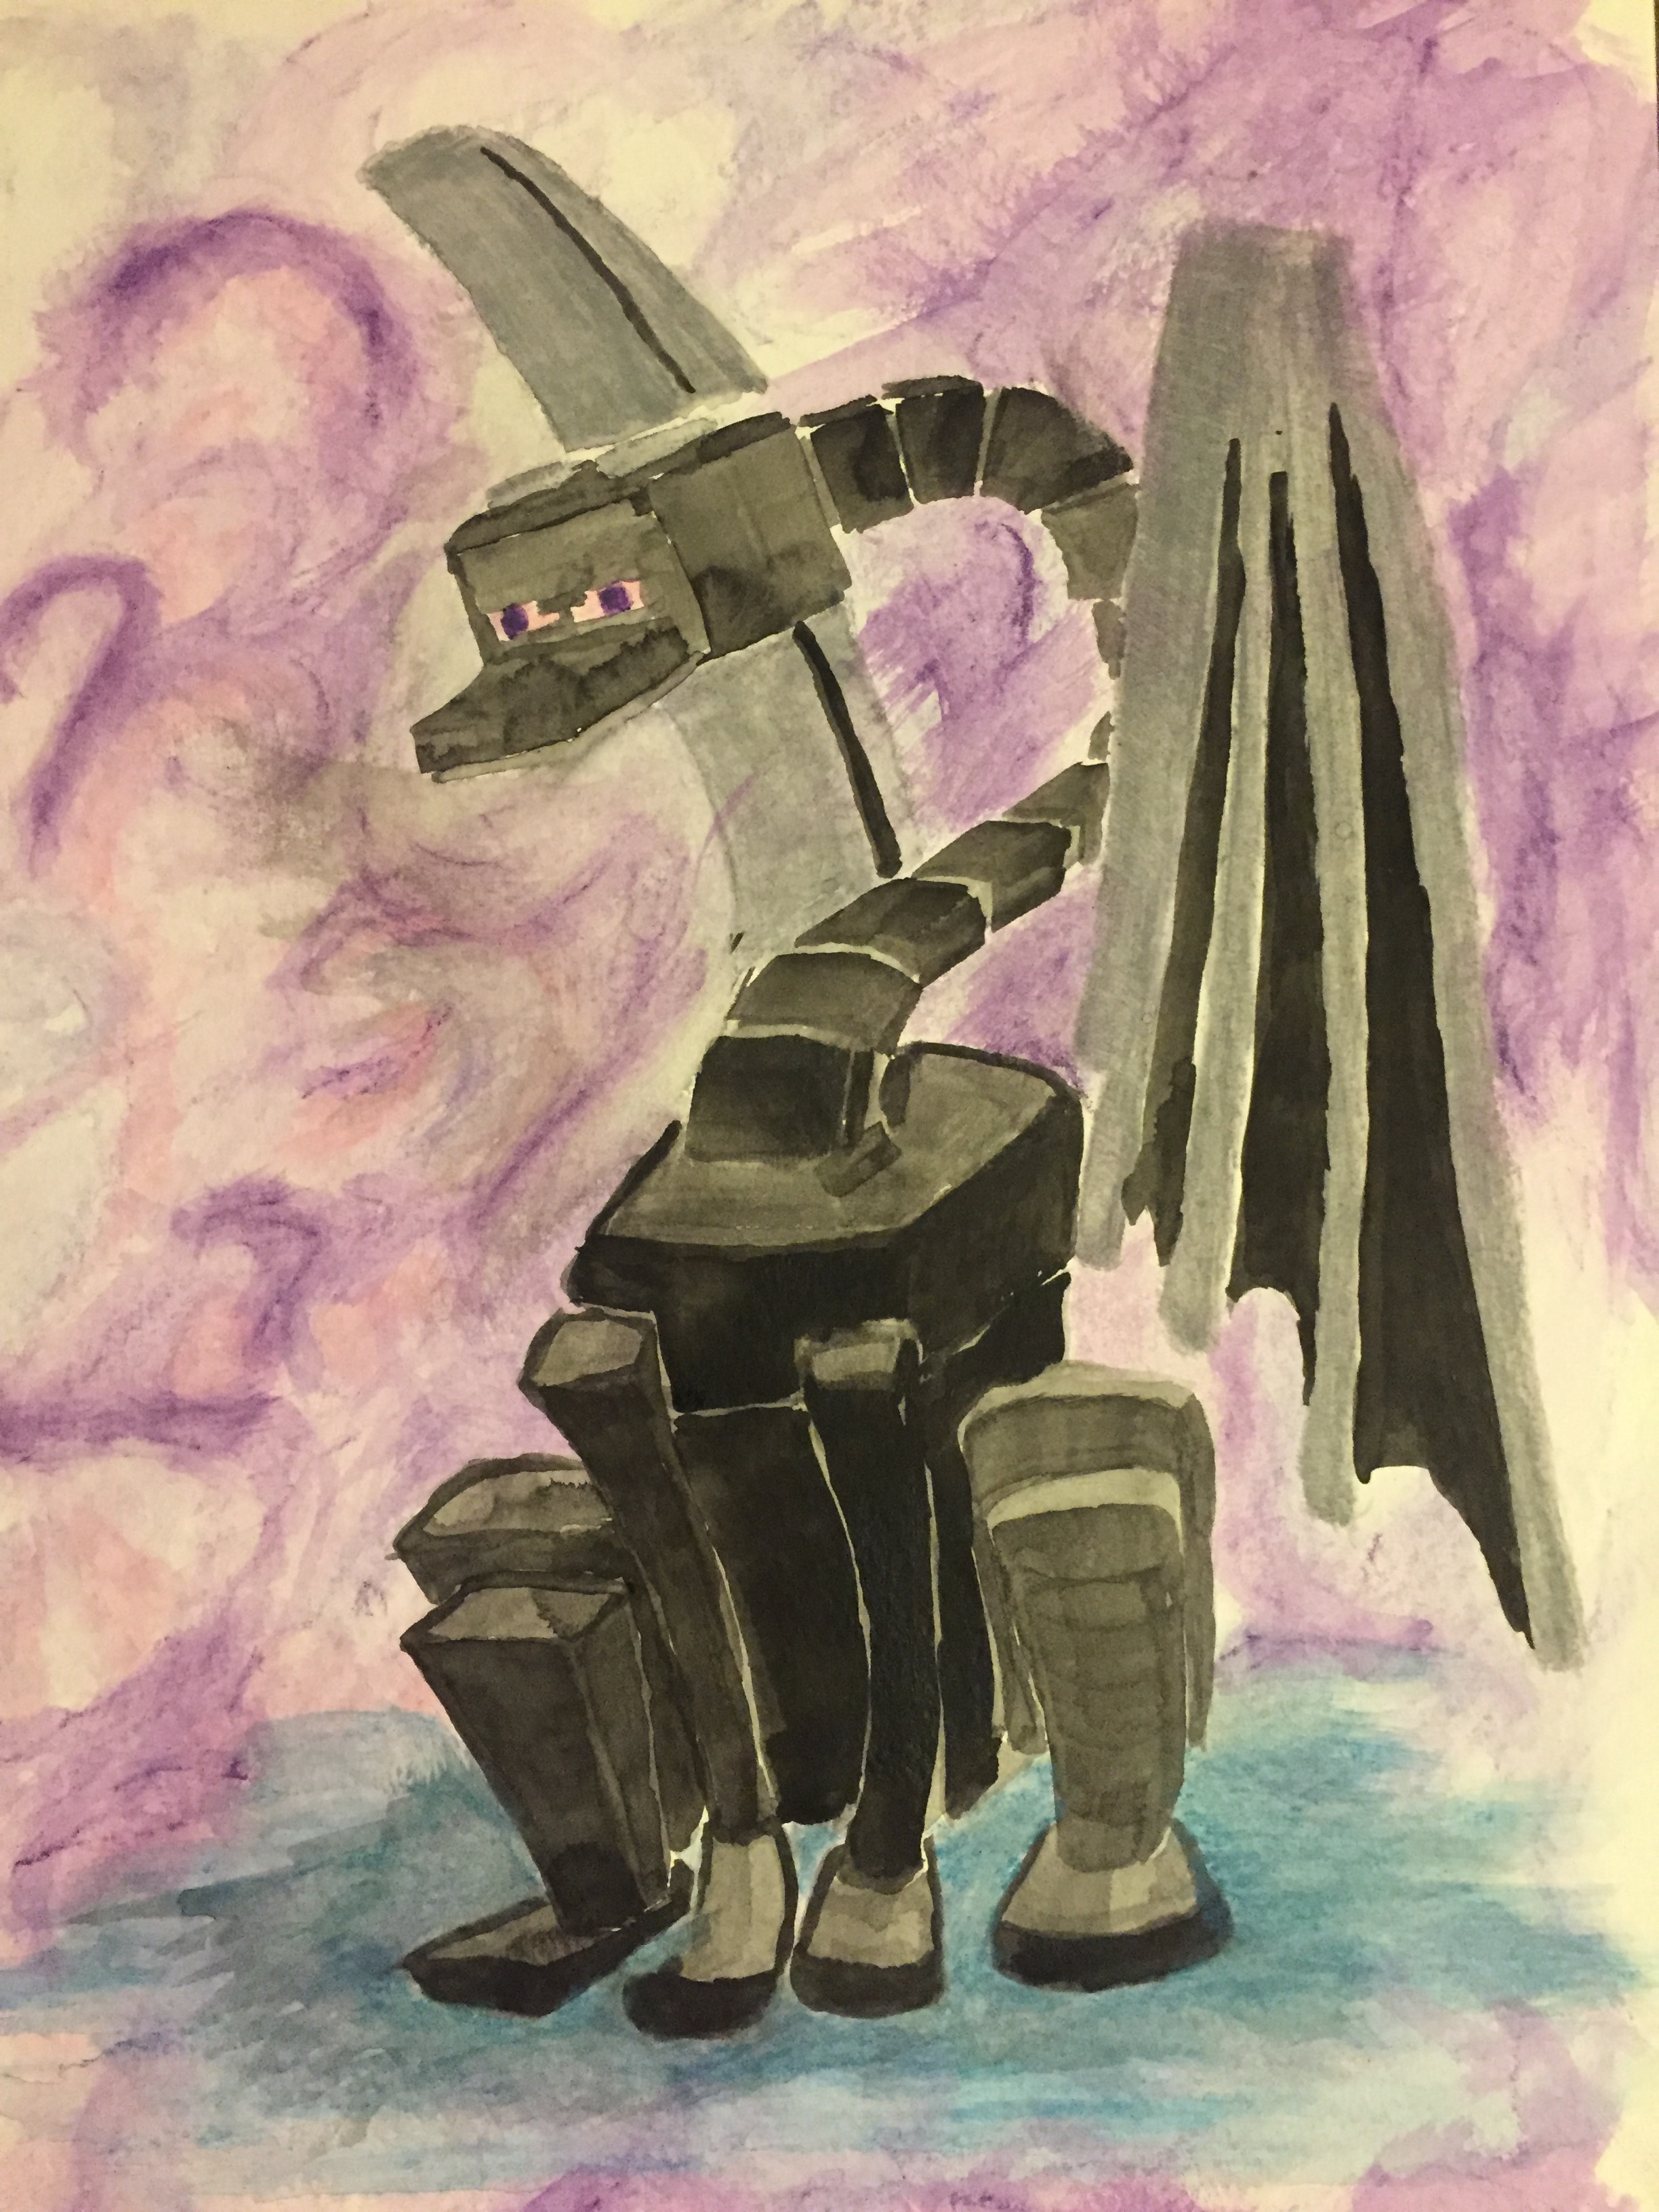 2448x3264 Enderdragon In Watercolor. The Society Of The Coastal Port Lantern